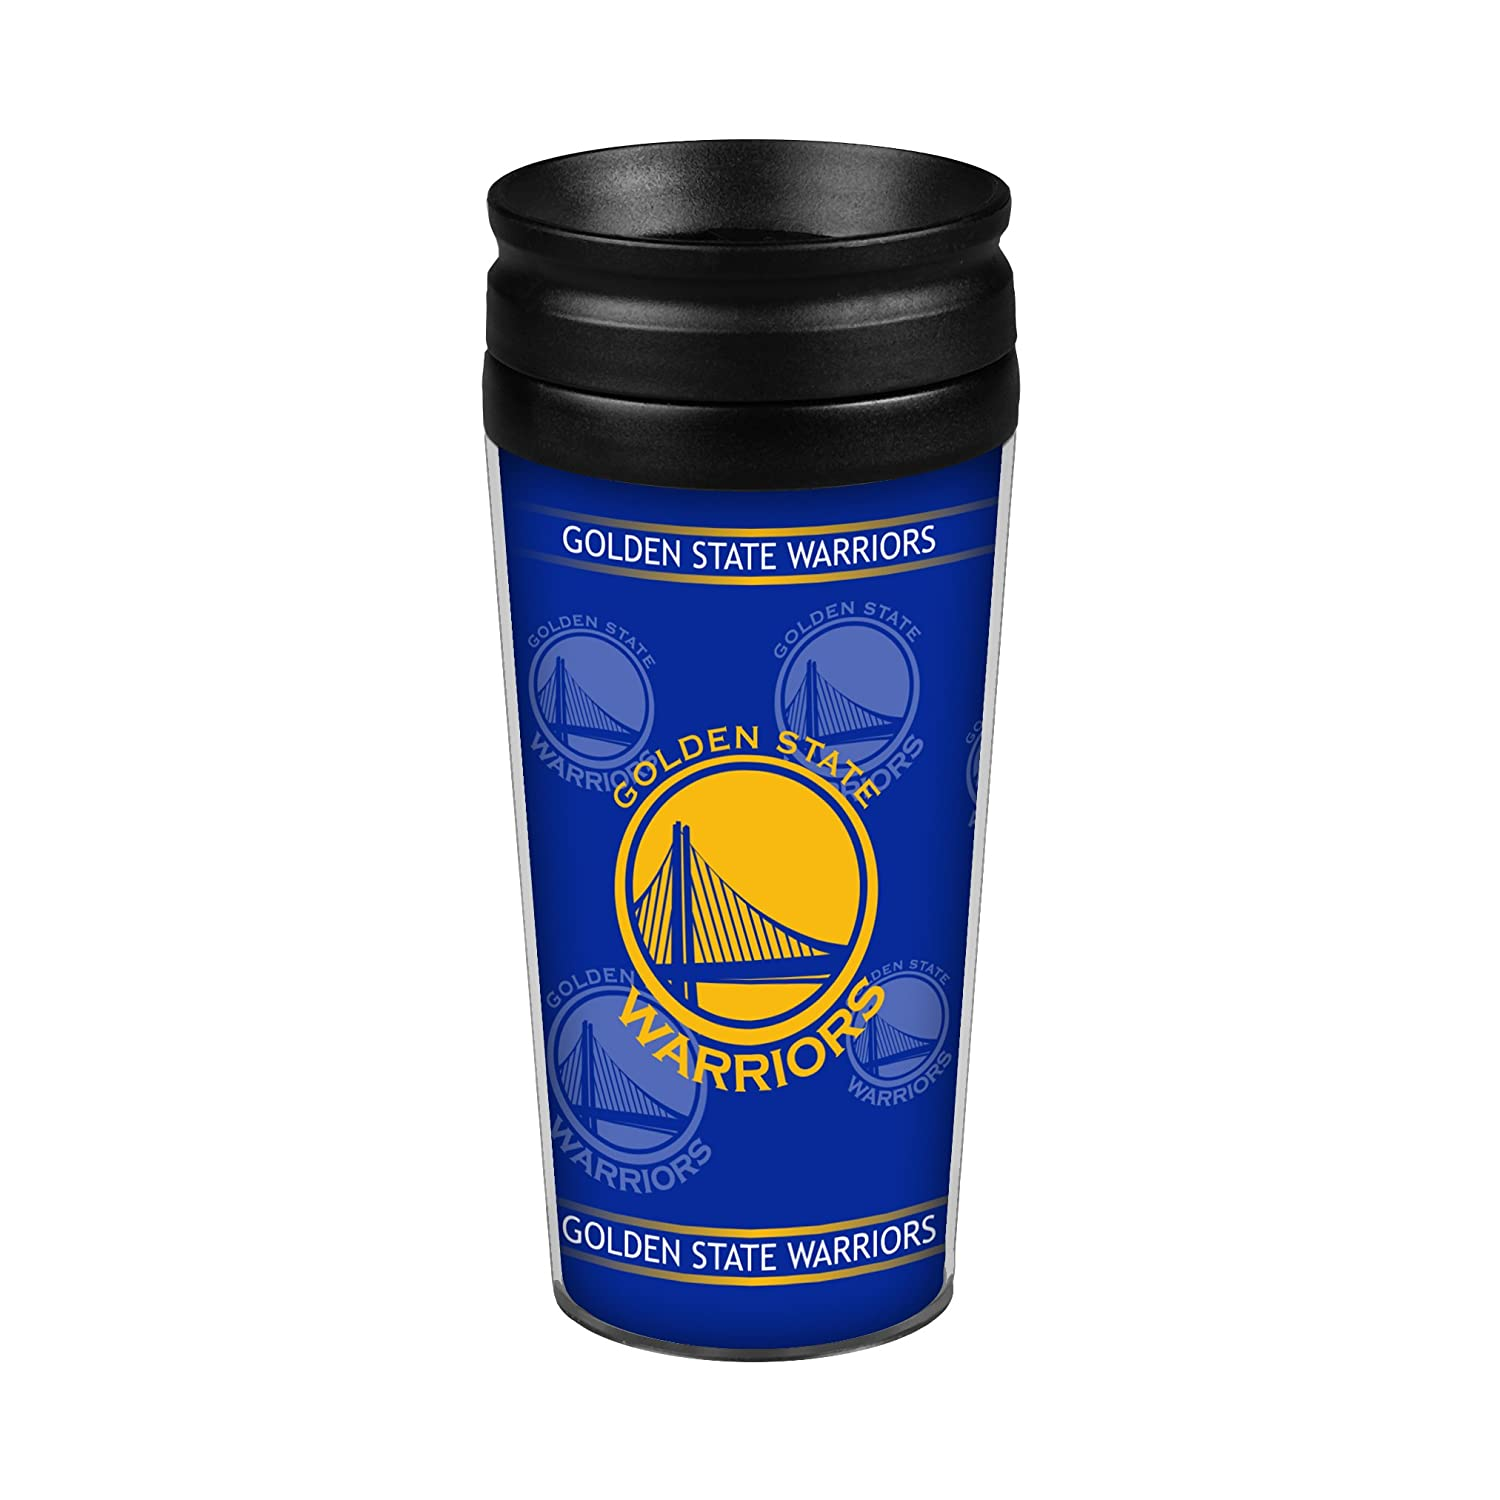 Golden State Warriors 14oz. Full Wrap Travel Mug Boelter Brands 8886002026